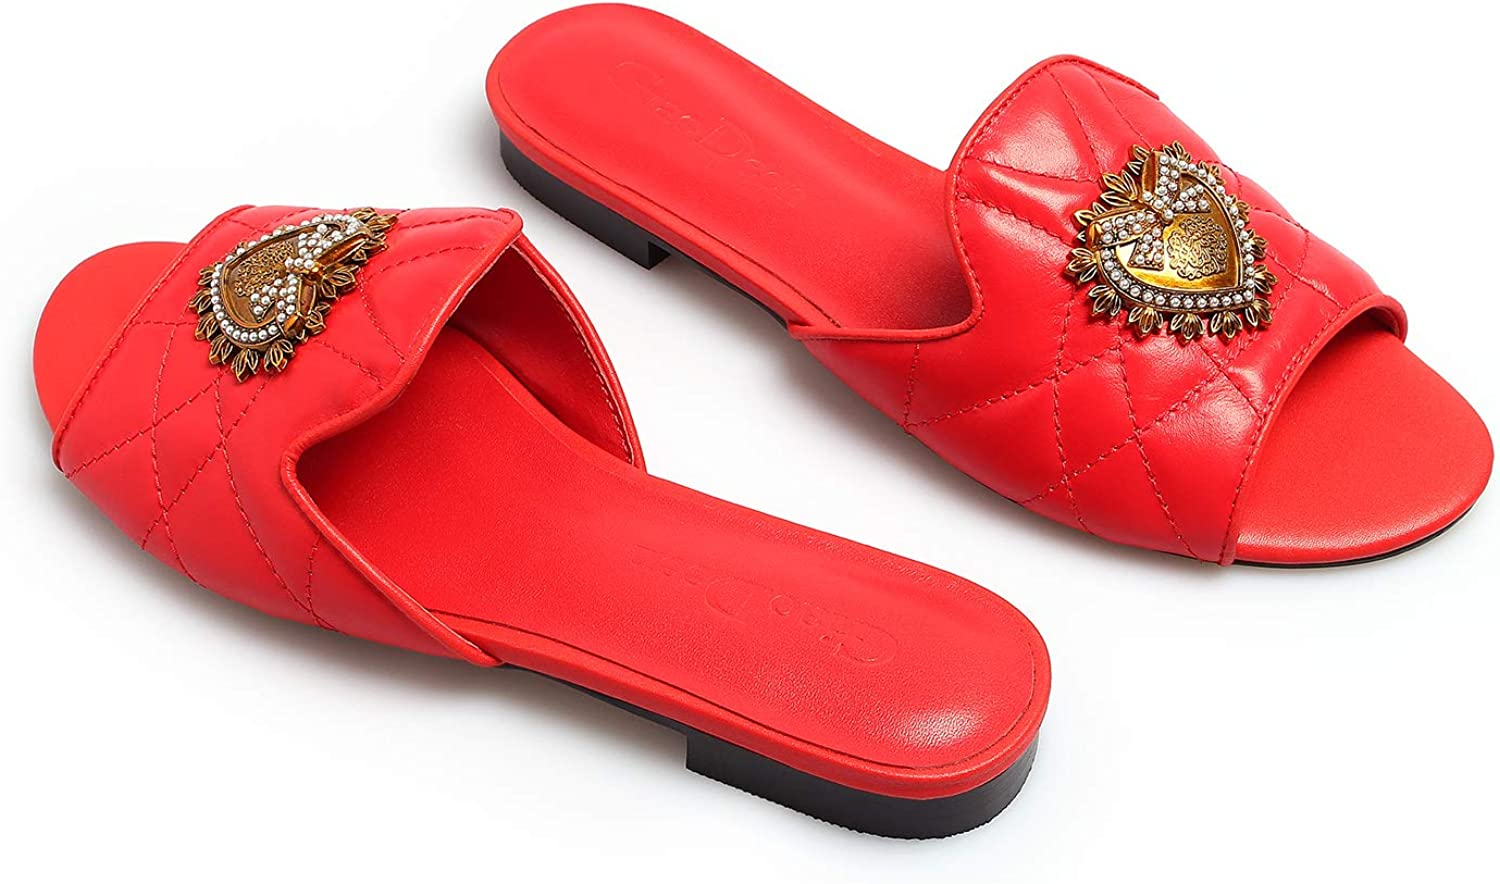 GiaoDeen Women's Flat Comfort Slide Sandals for Party Dress Genuine Leather Slip on Shoes